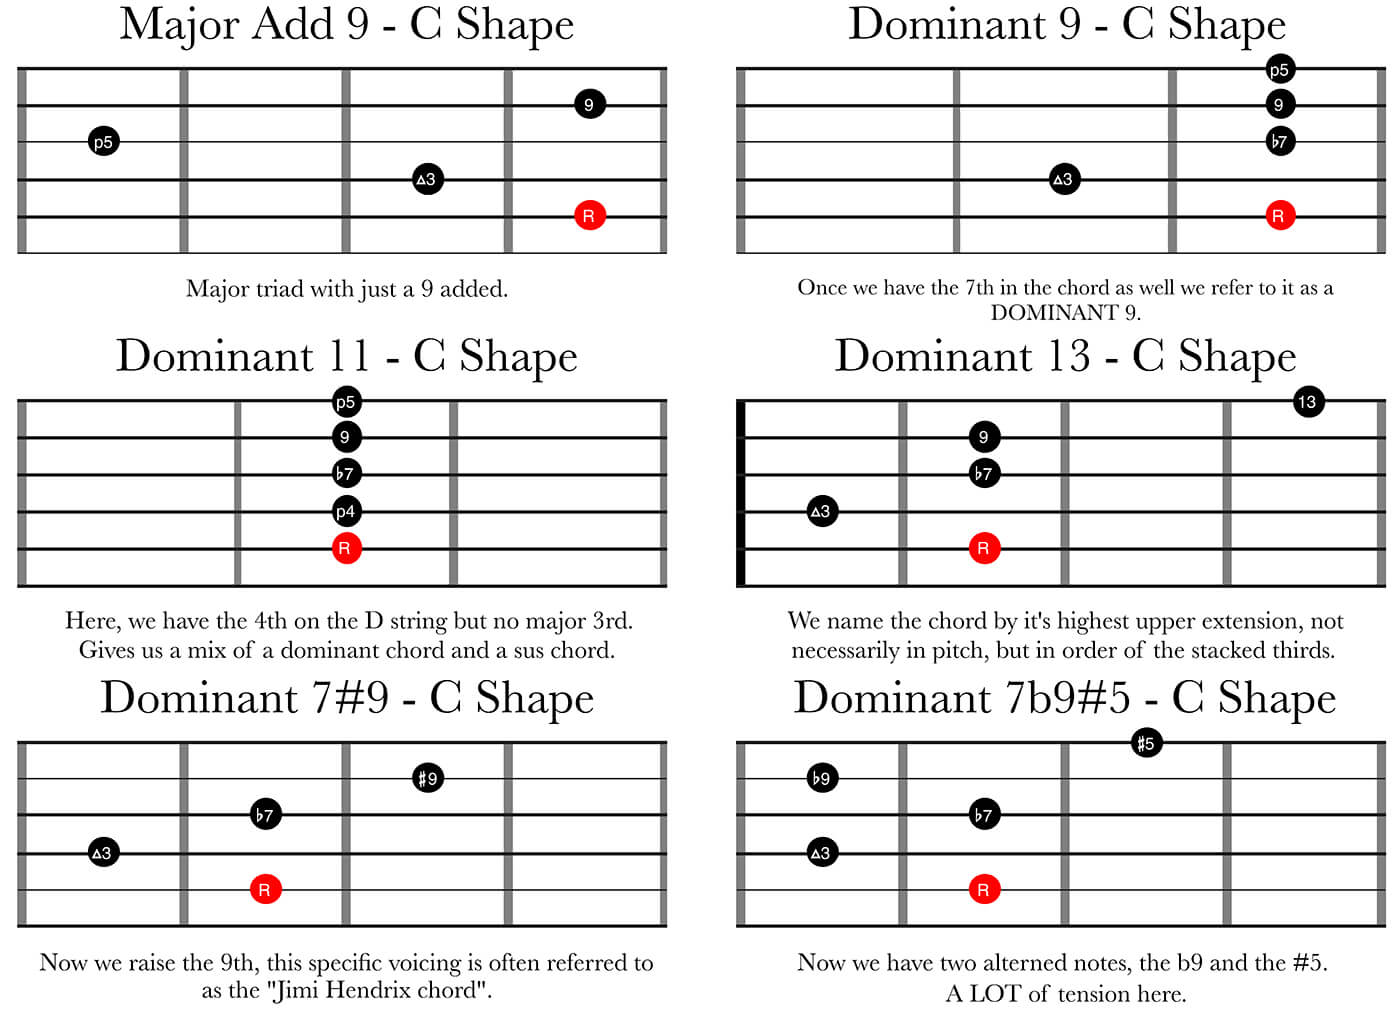 Dominant Chords - Upper Extensions